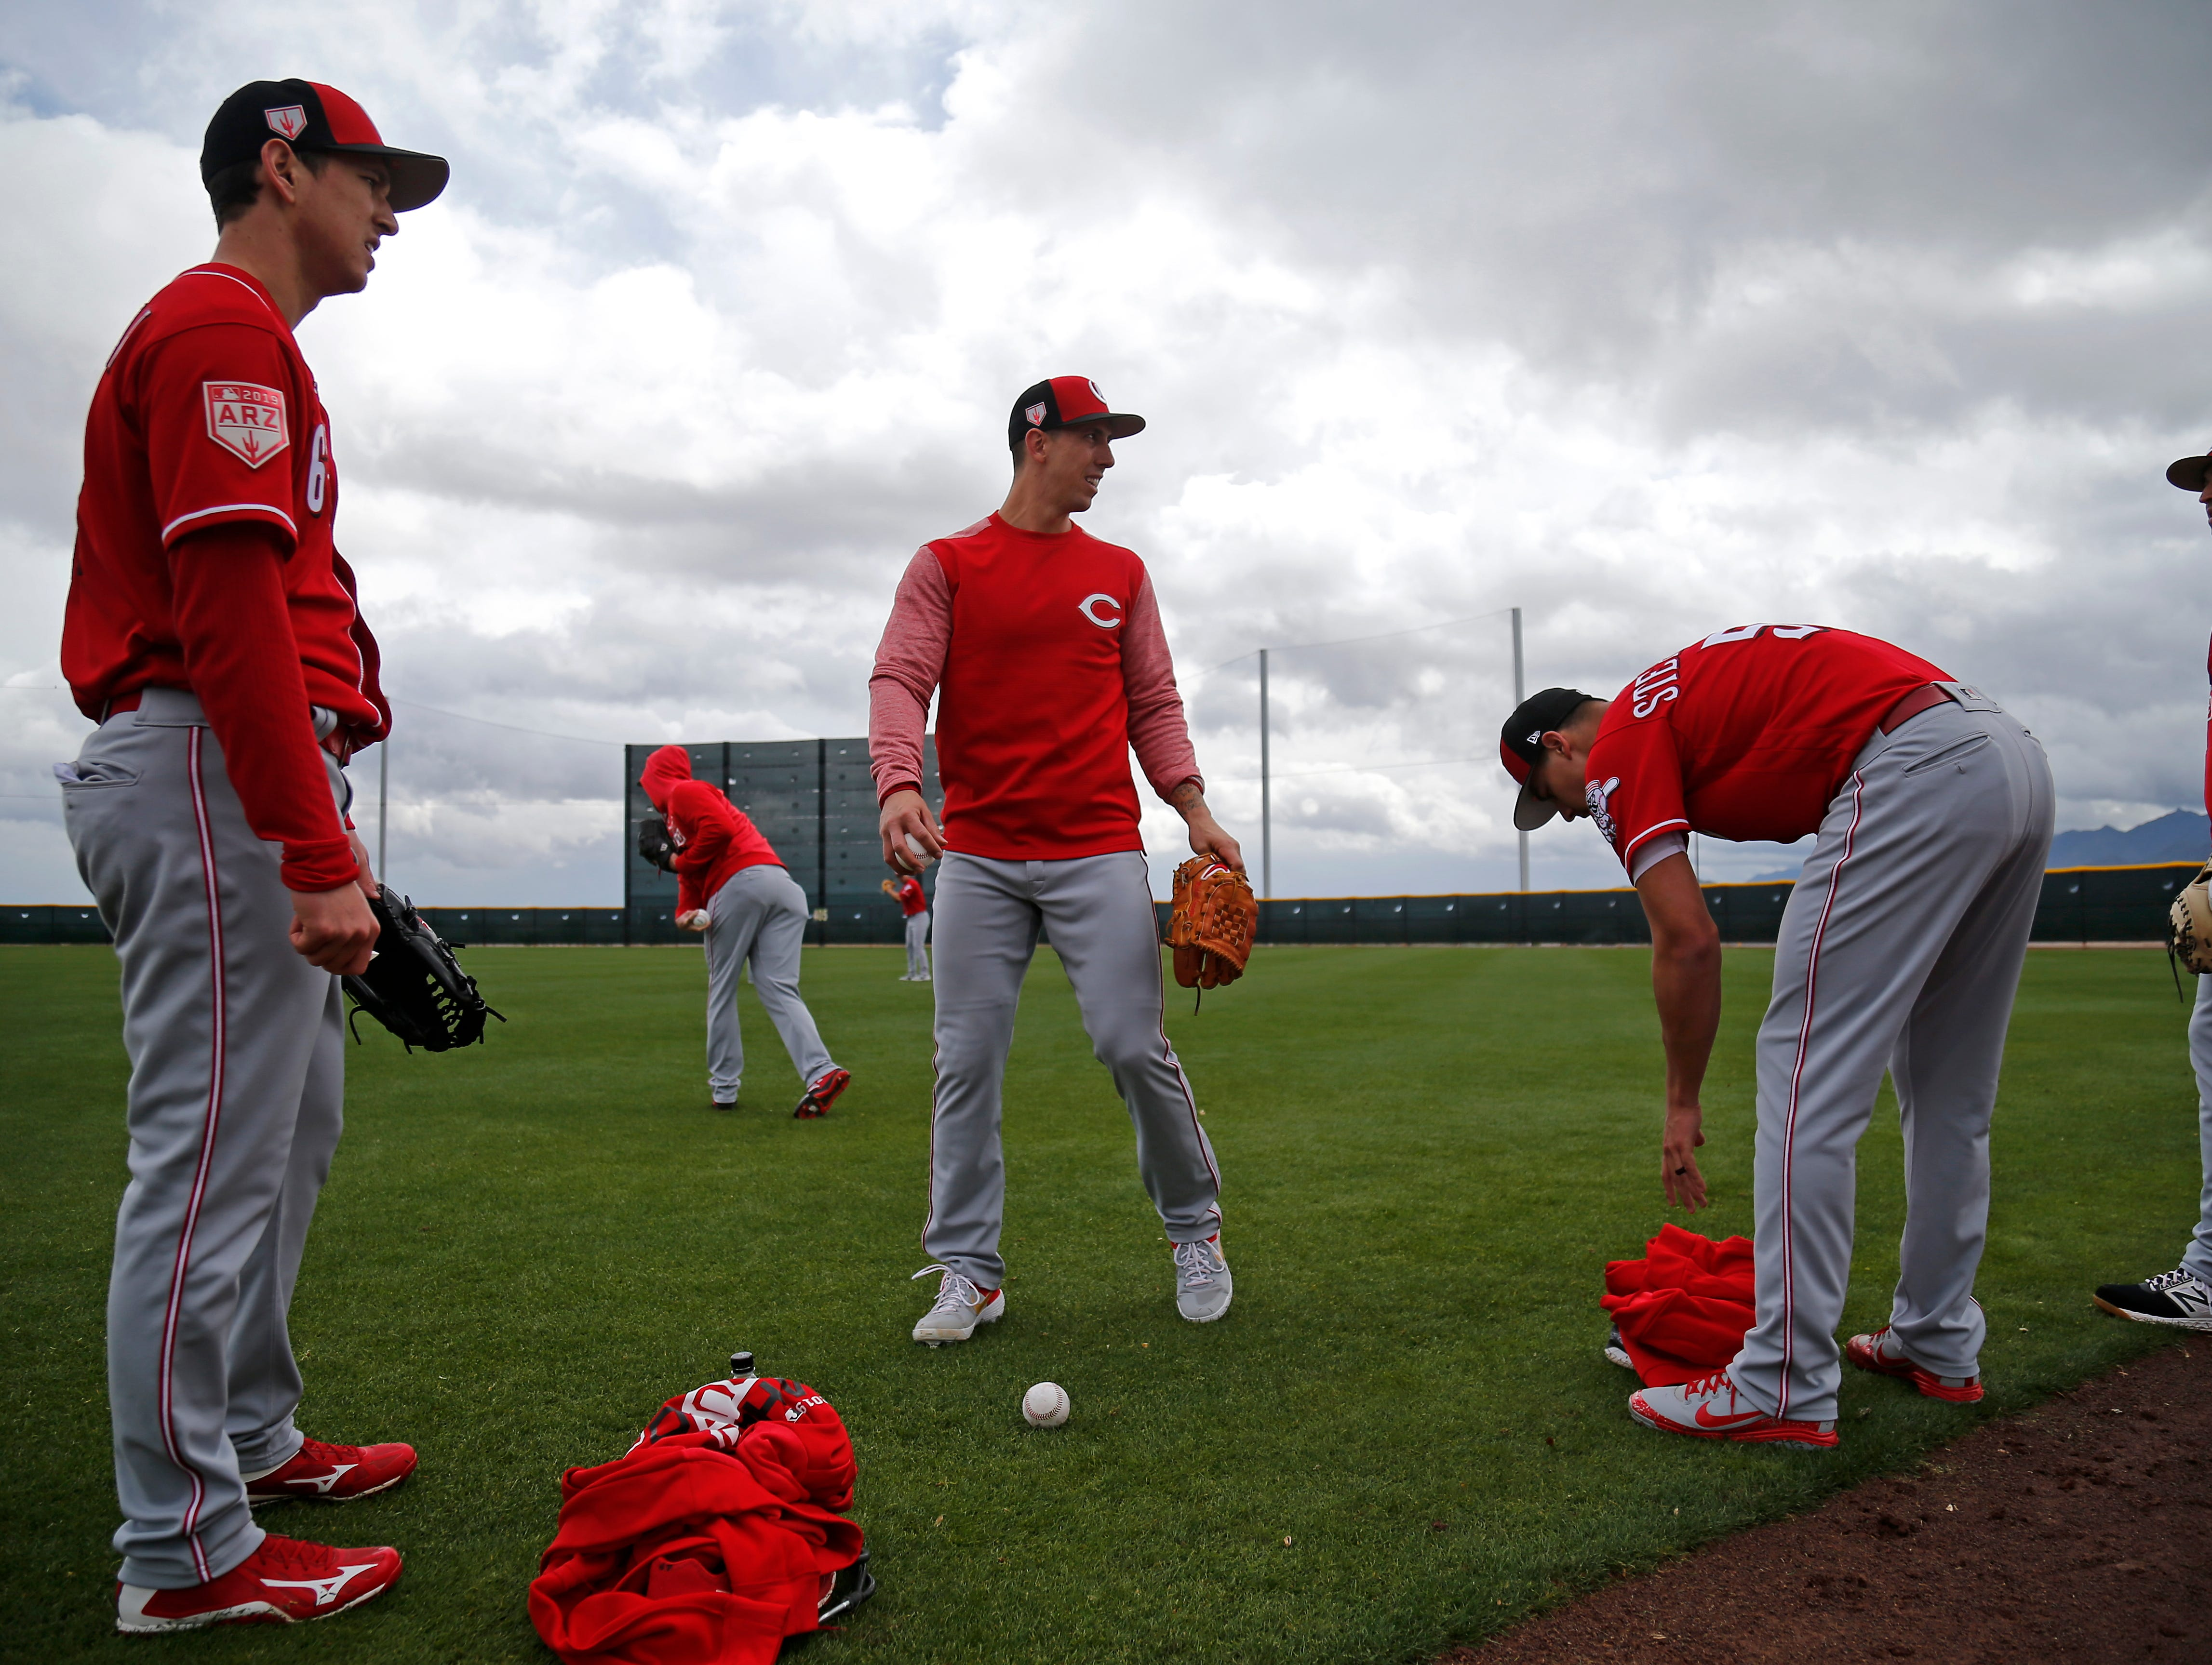 Cincinnati Reds relief pitcher Michael Lorenzen (21) talks with minor league pitchers after warming up at the Cincinnati Reds spring training facility in Goodyear, Ariz., on Thursday, Feb. 21, 2019.